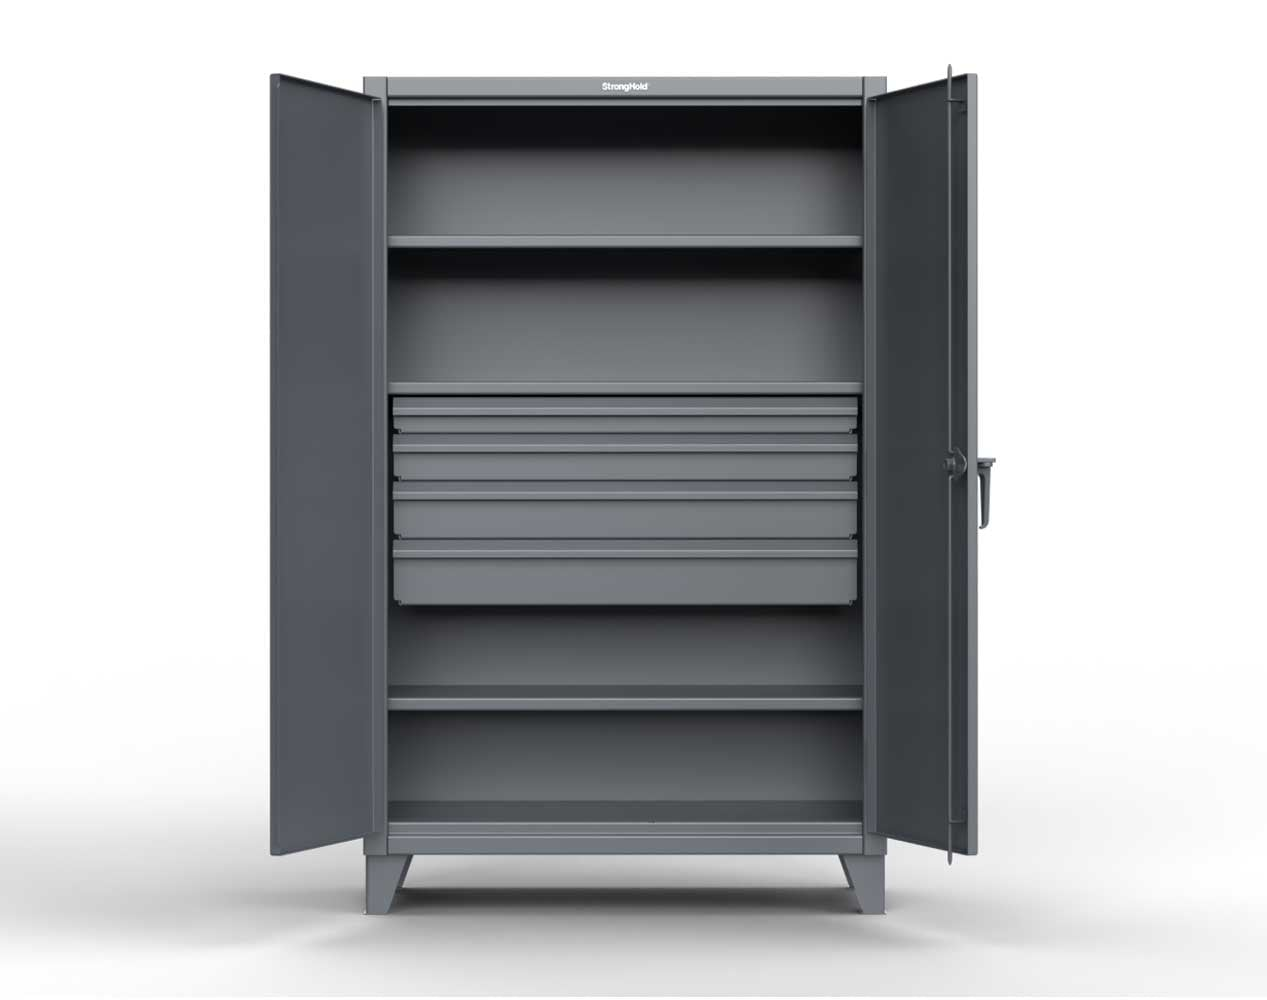 Extreme Duty 12 GA Cabinet with 4 Drawers, 3 Shelves – 36 In. W x 24 In. D x 78 In. H